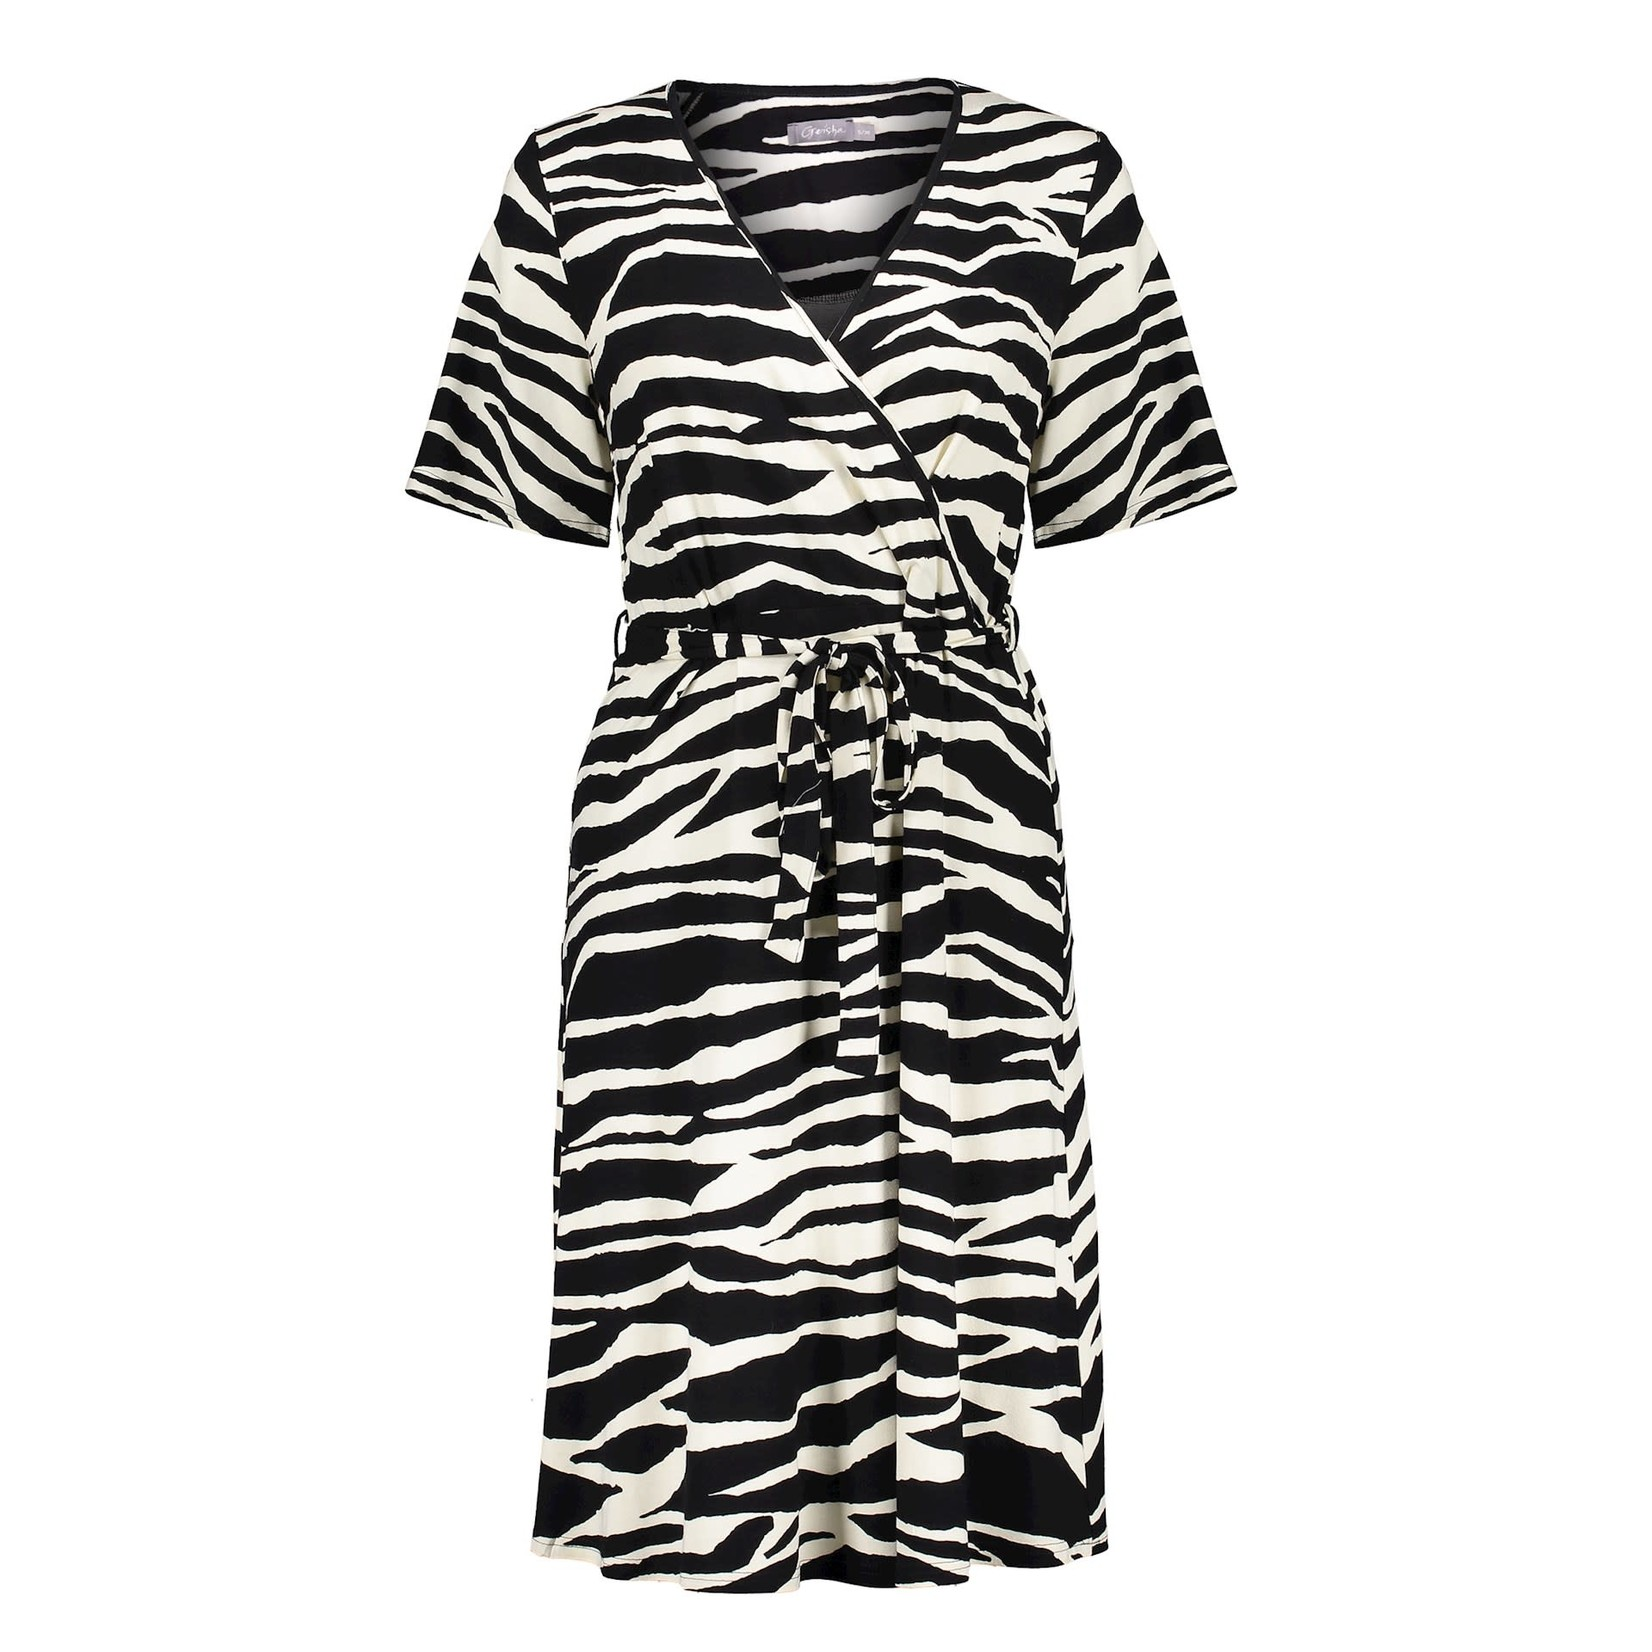 Geisha Geisha dress zebra & strap at waist s/s 17130-20